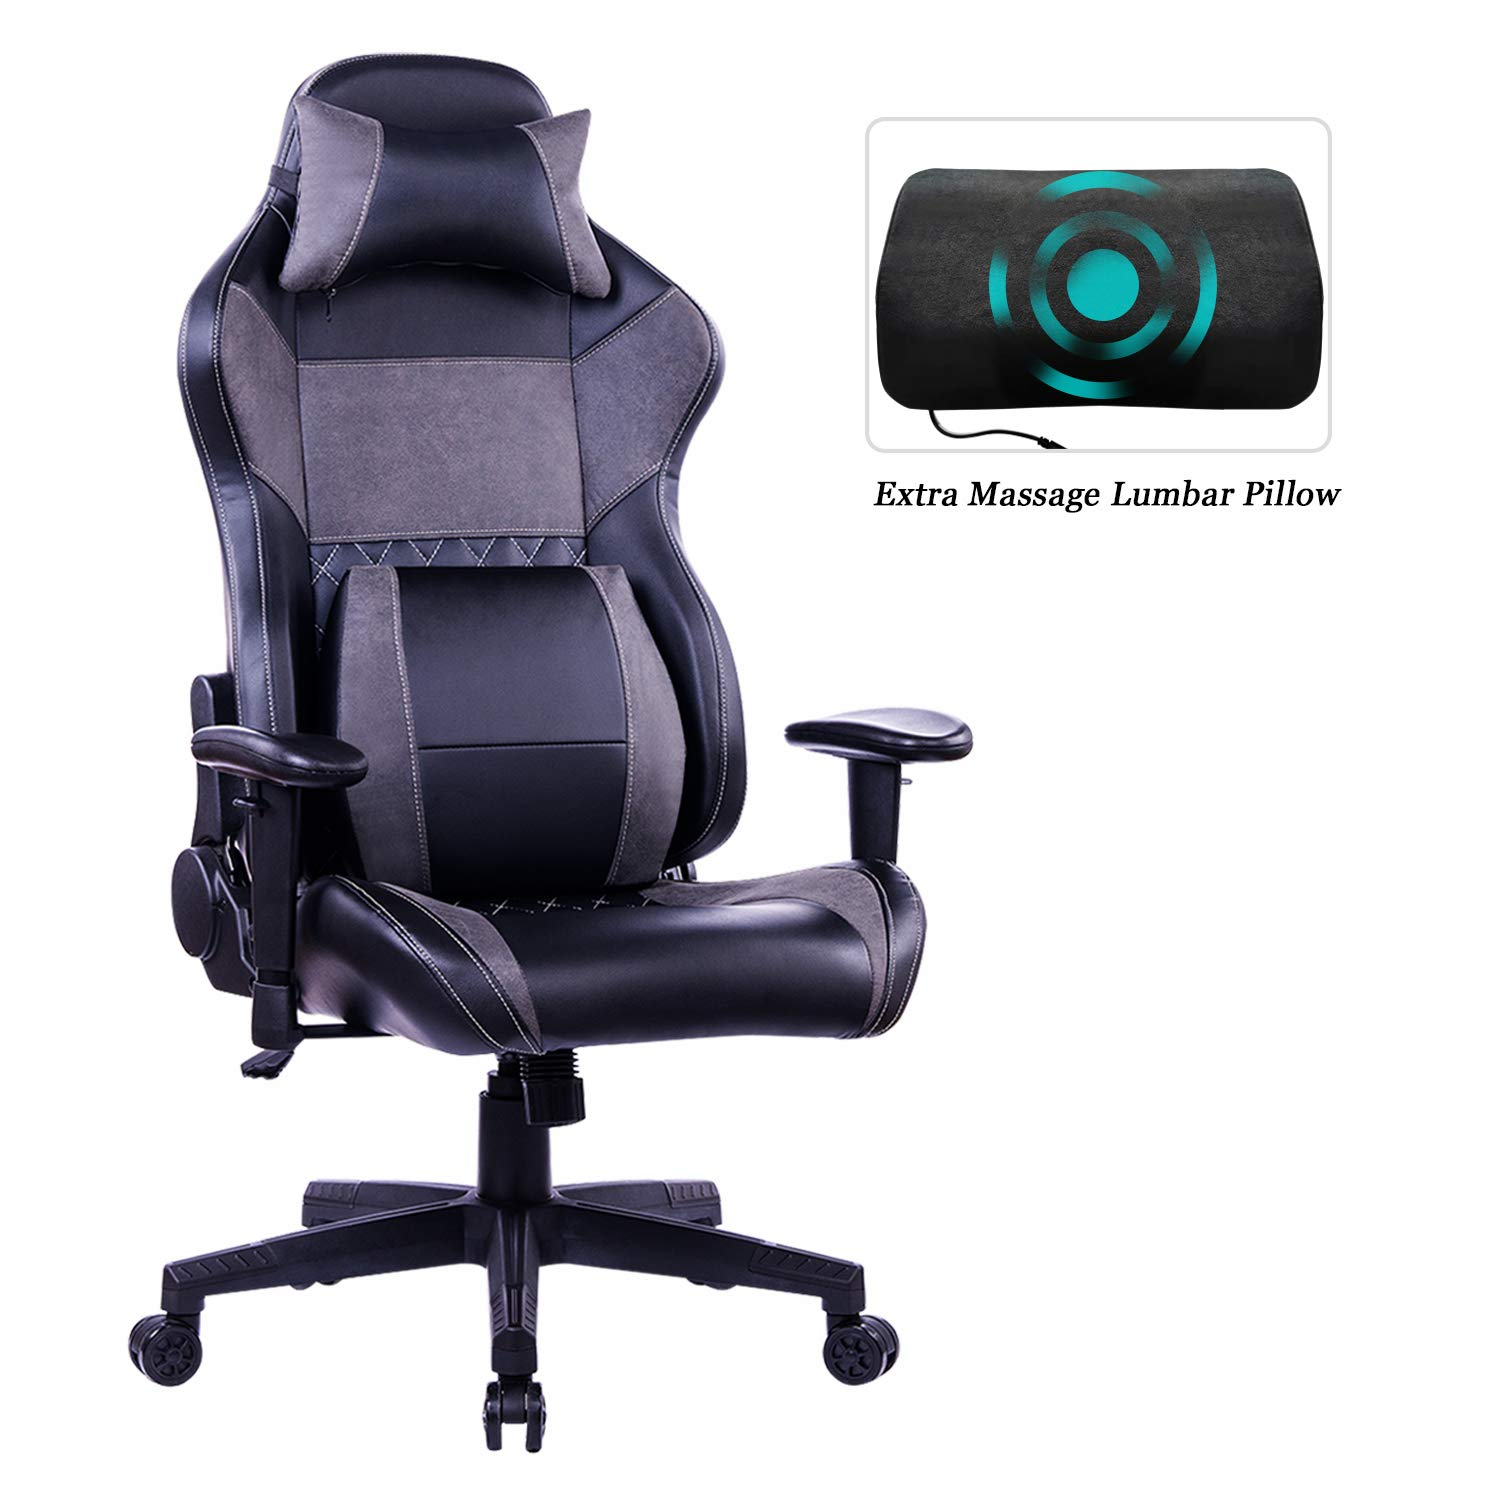 HEALGEN Gaming Office Chair with Large Lumbar Support,Reclining High Back Ergonomic Memory Foam Desk Chair,Racing Style PC Computer Executive Leather Chair with Headrest GM8260 (Grey) by HEALGEN